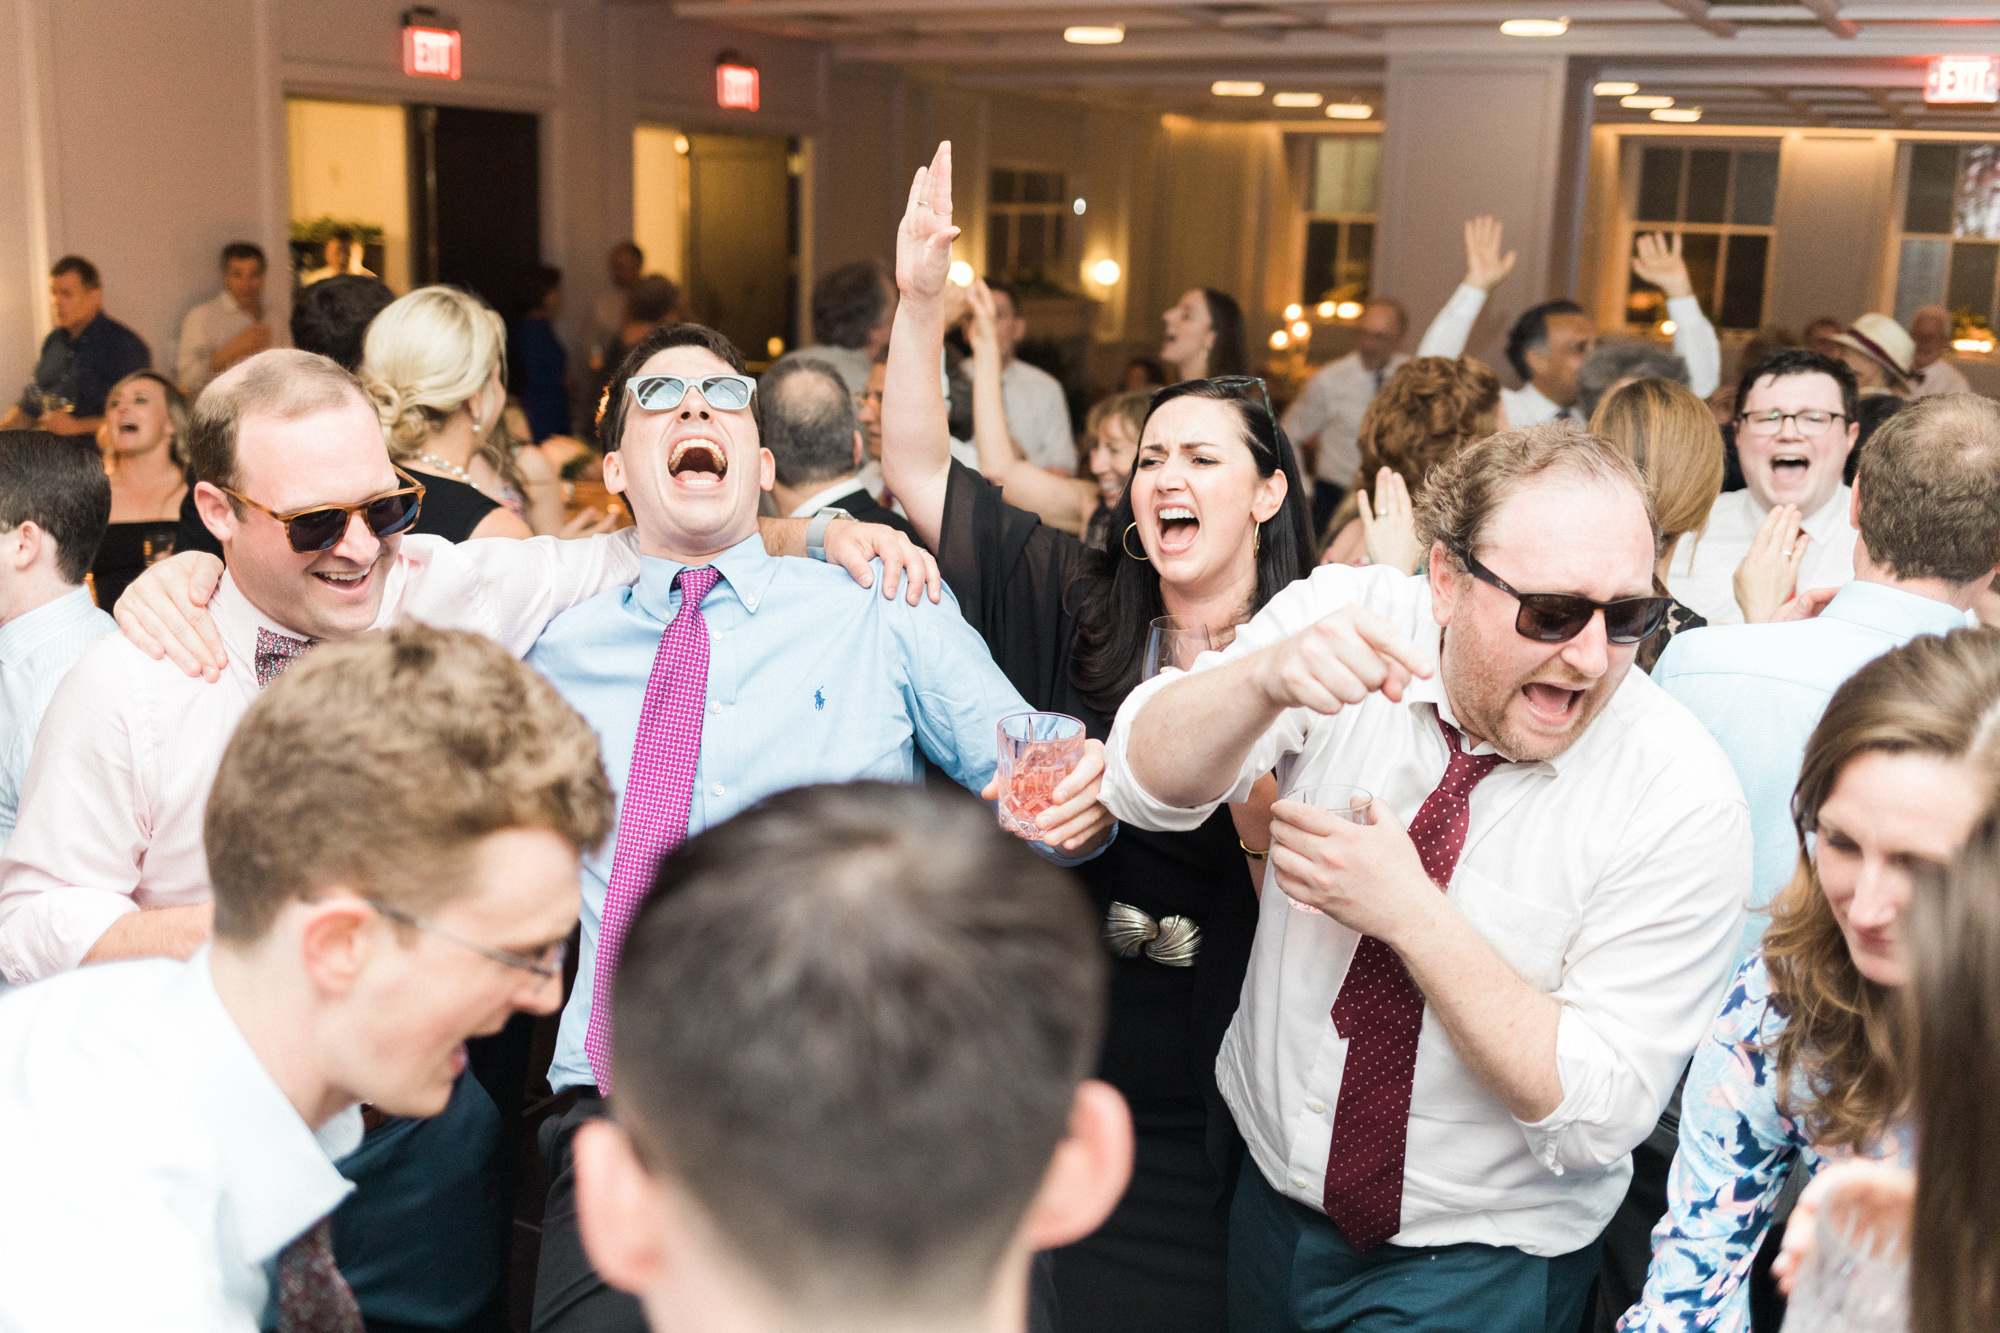 DAncePartyLineHotelWeddingWashingtonDCPlumePhotography2019